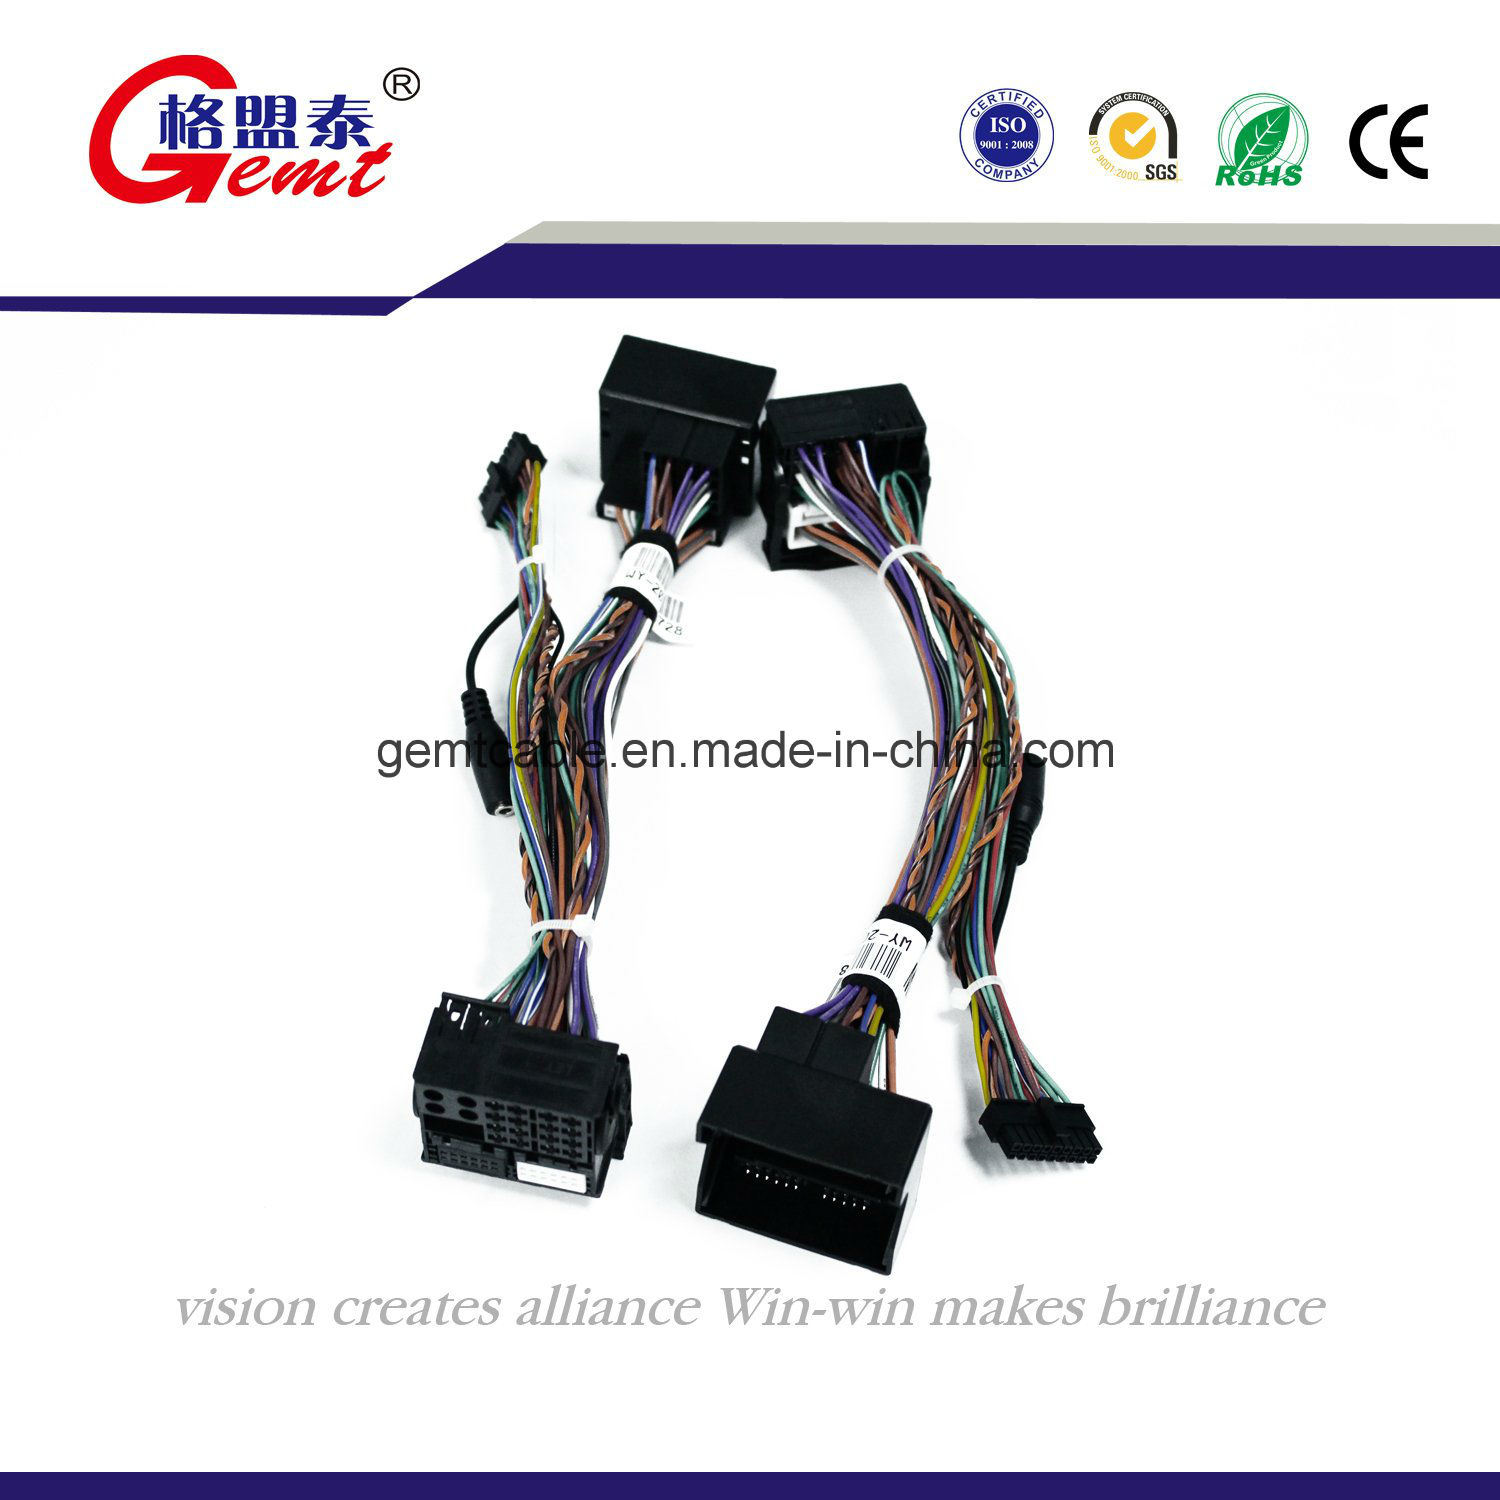 Wiring Harness Companies Solutions Company China Manufacturer Produces Custom Cable Assembly